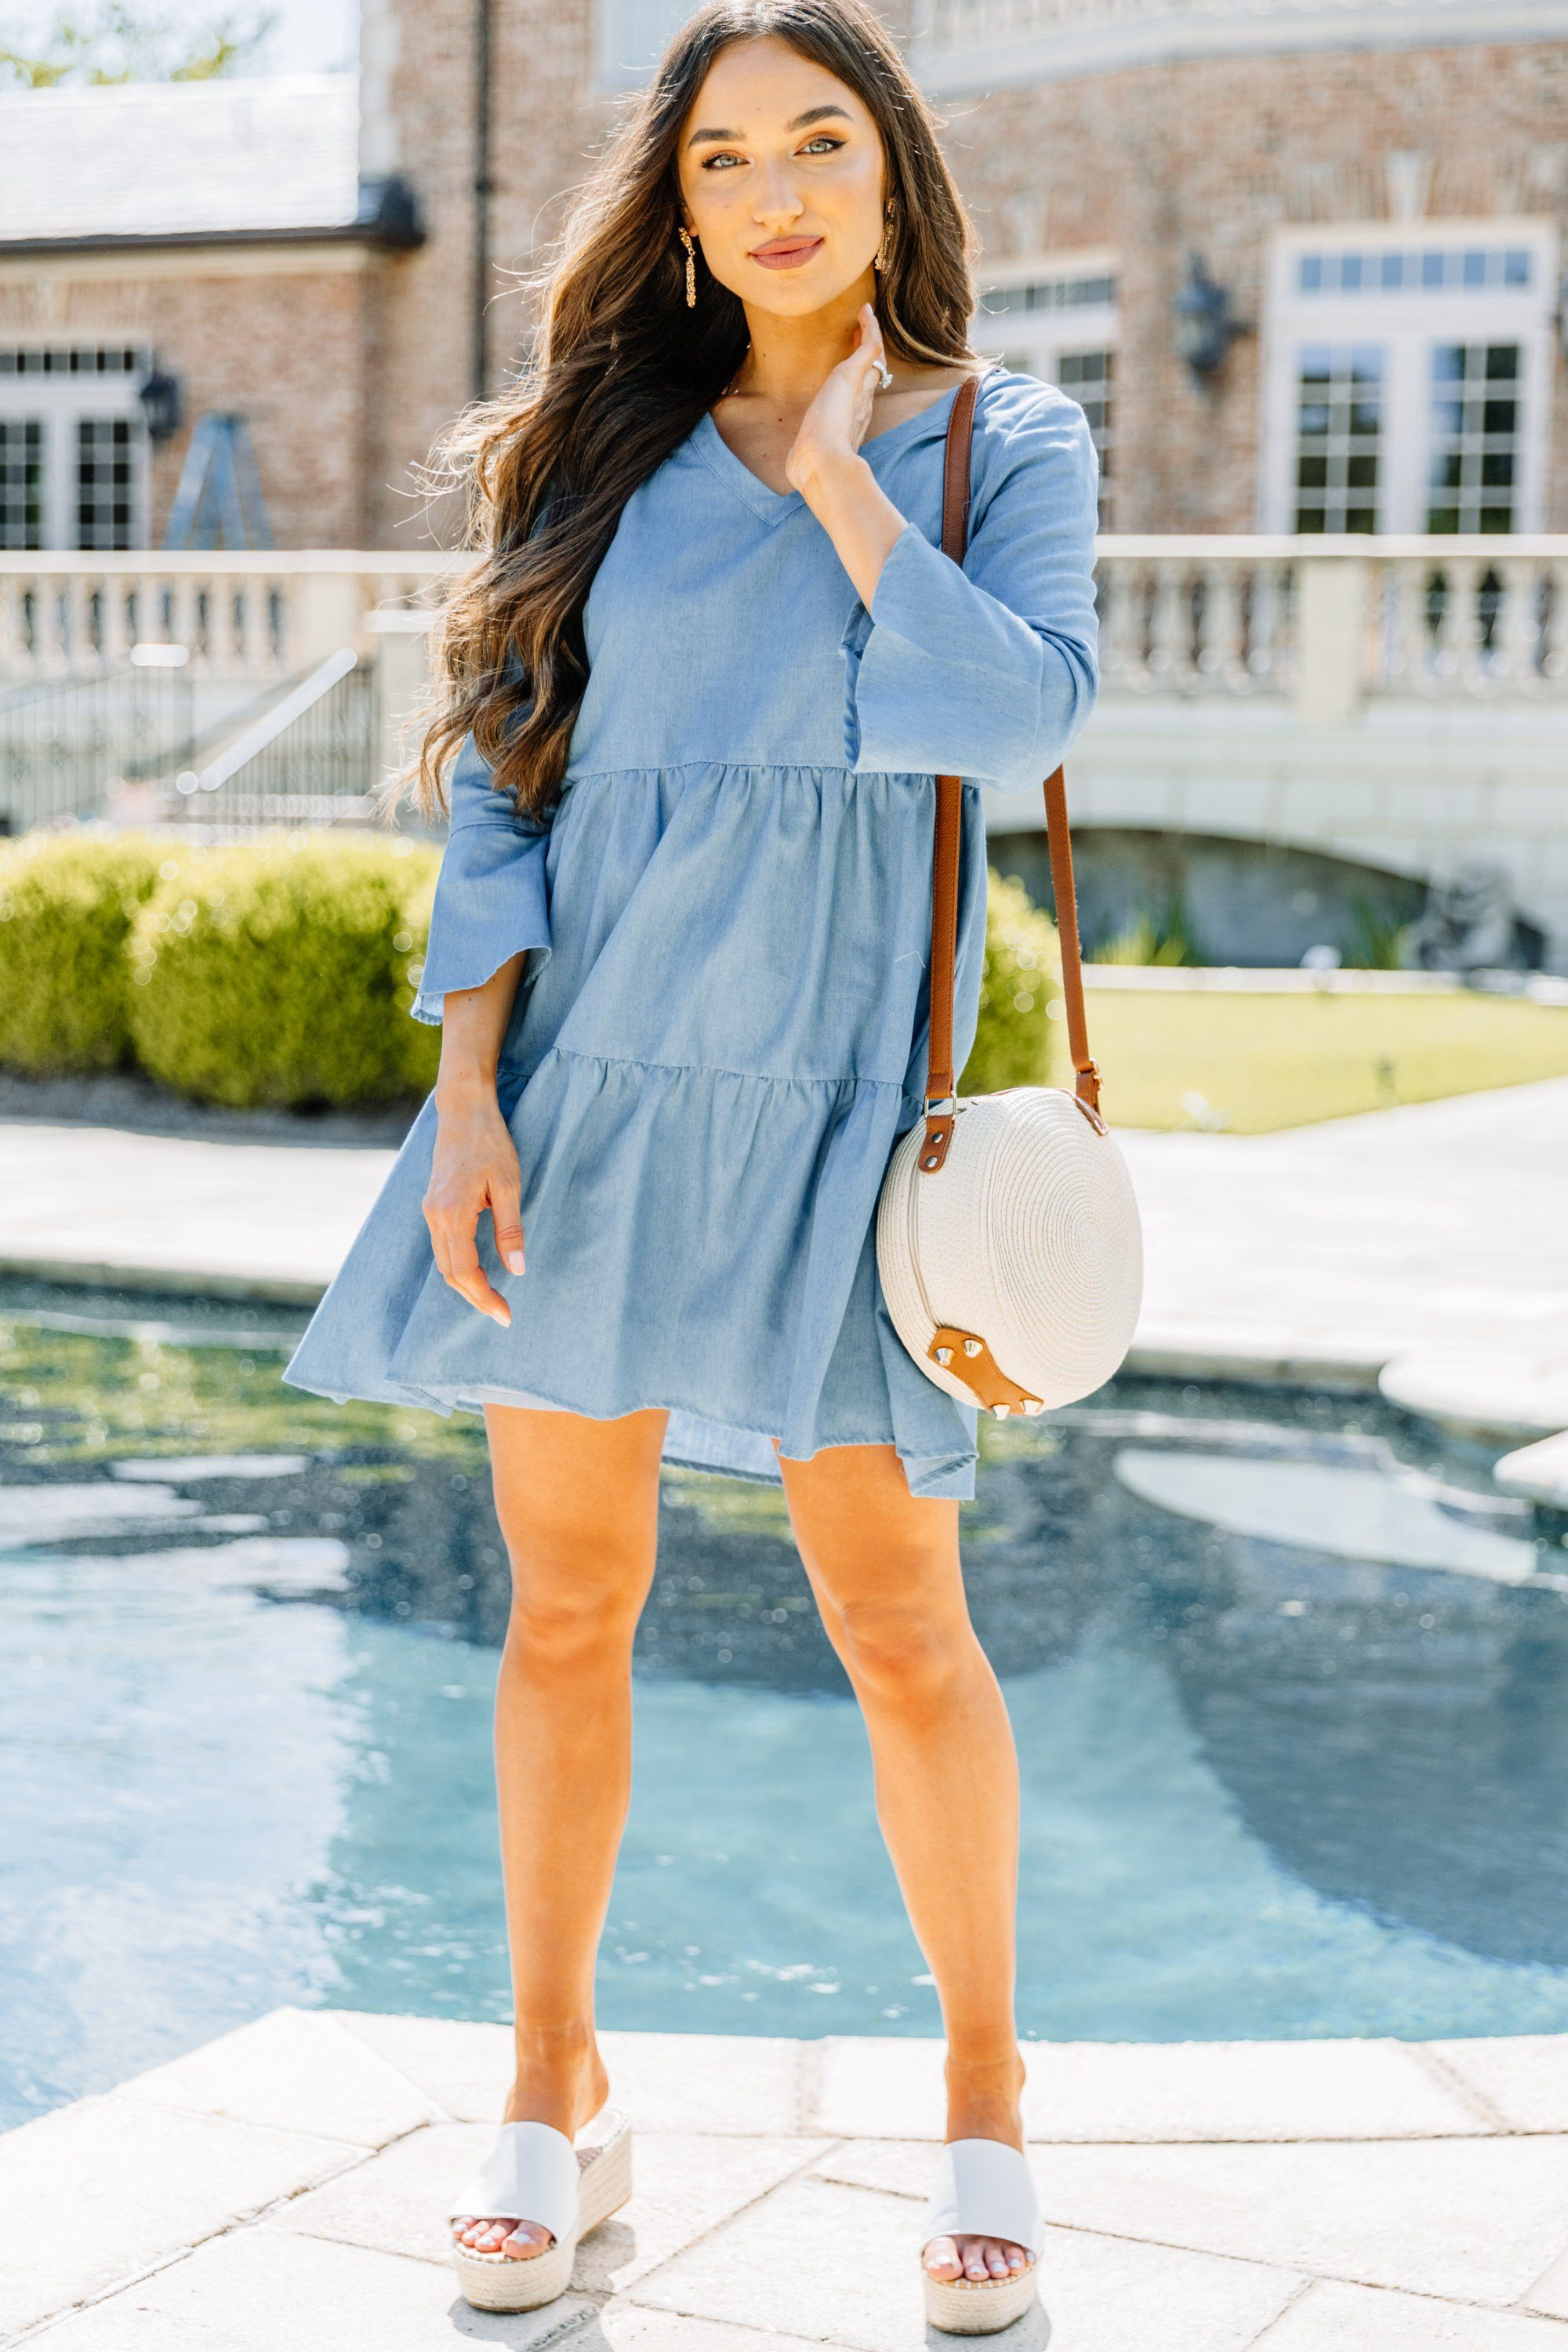 Easy Go Blue Chambray Babydoll Dress Cute Beach Outfits Cute Casual Outfits Fashion Nova Outfits [ 3000 x 2000 Pixel ]